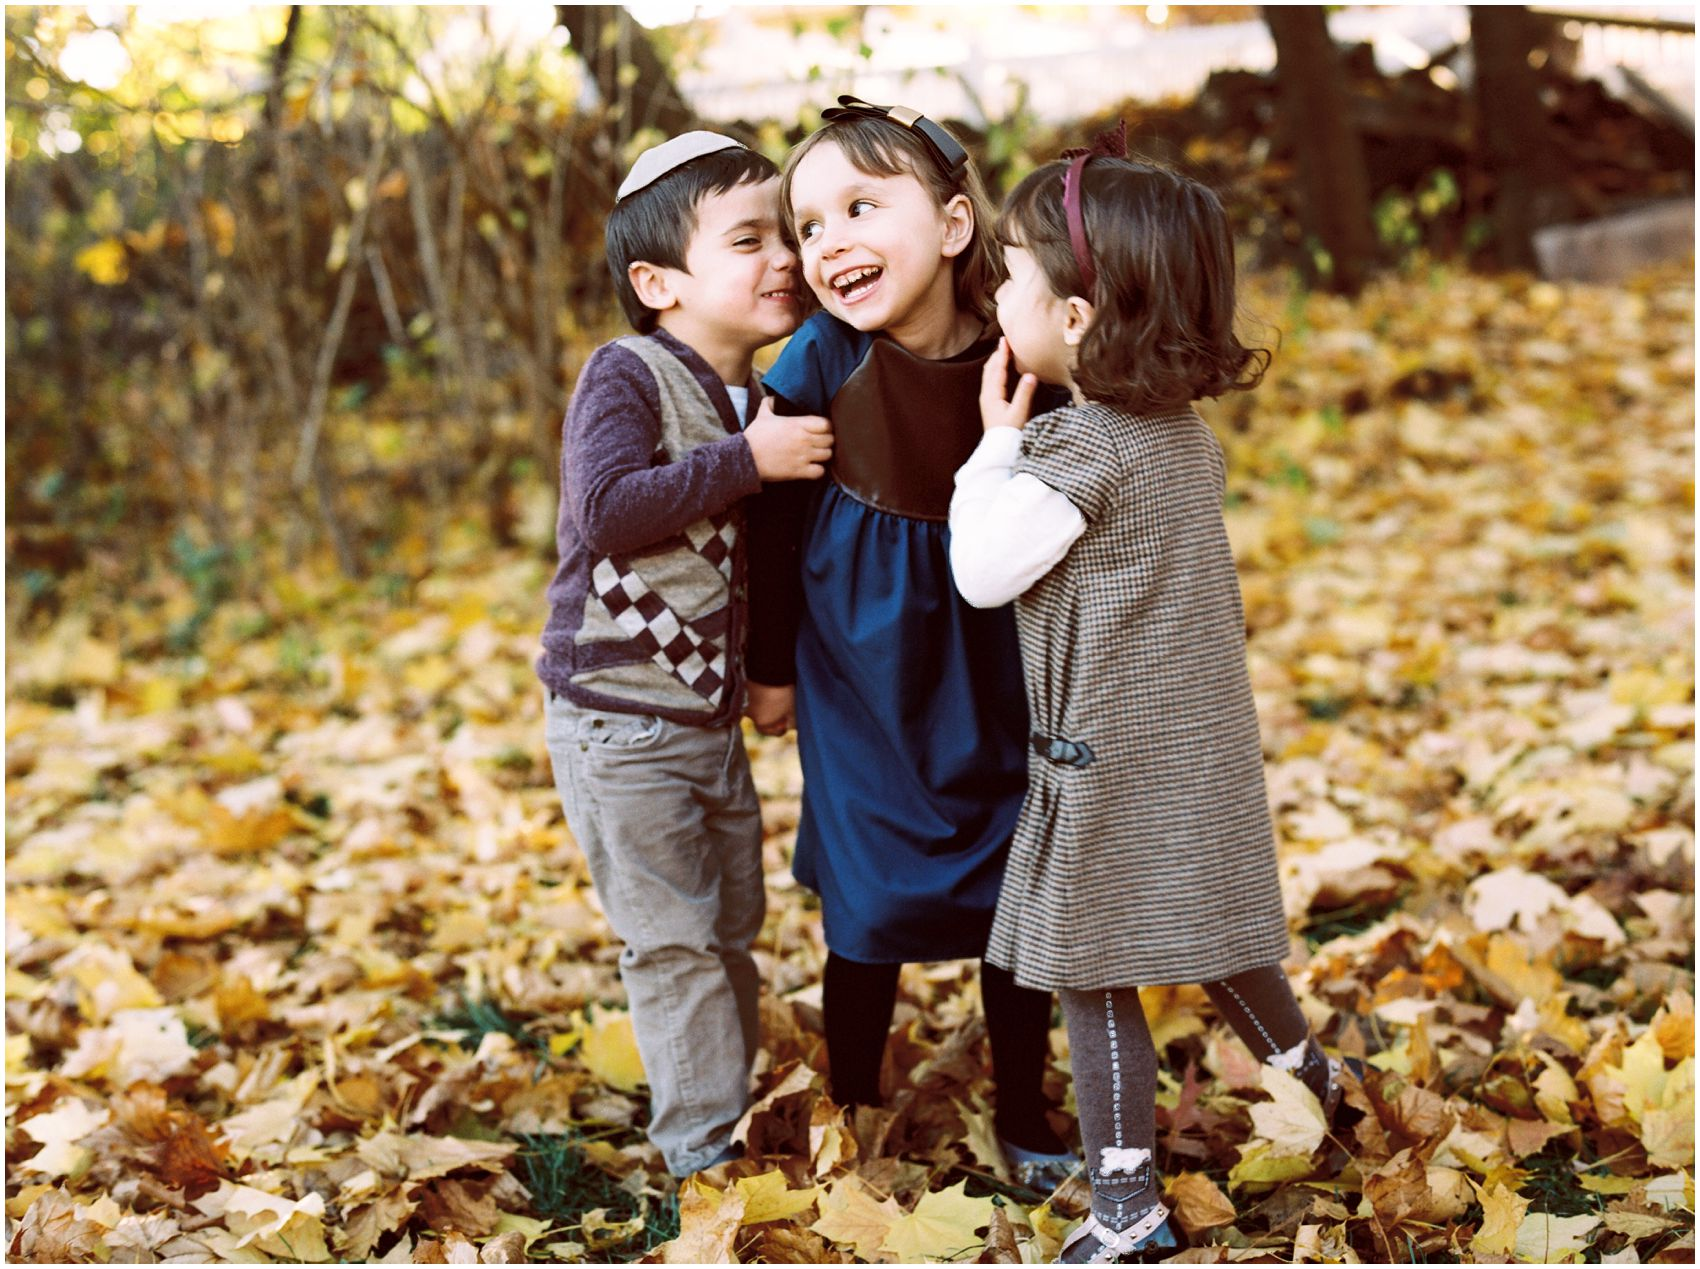 giggling siblings in the park during fall photos